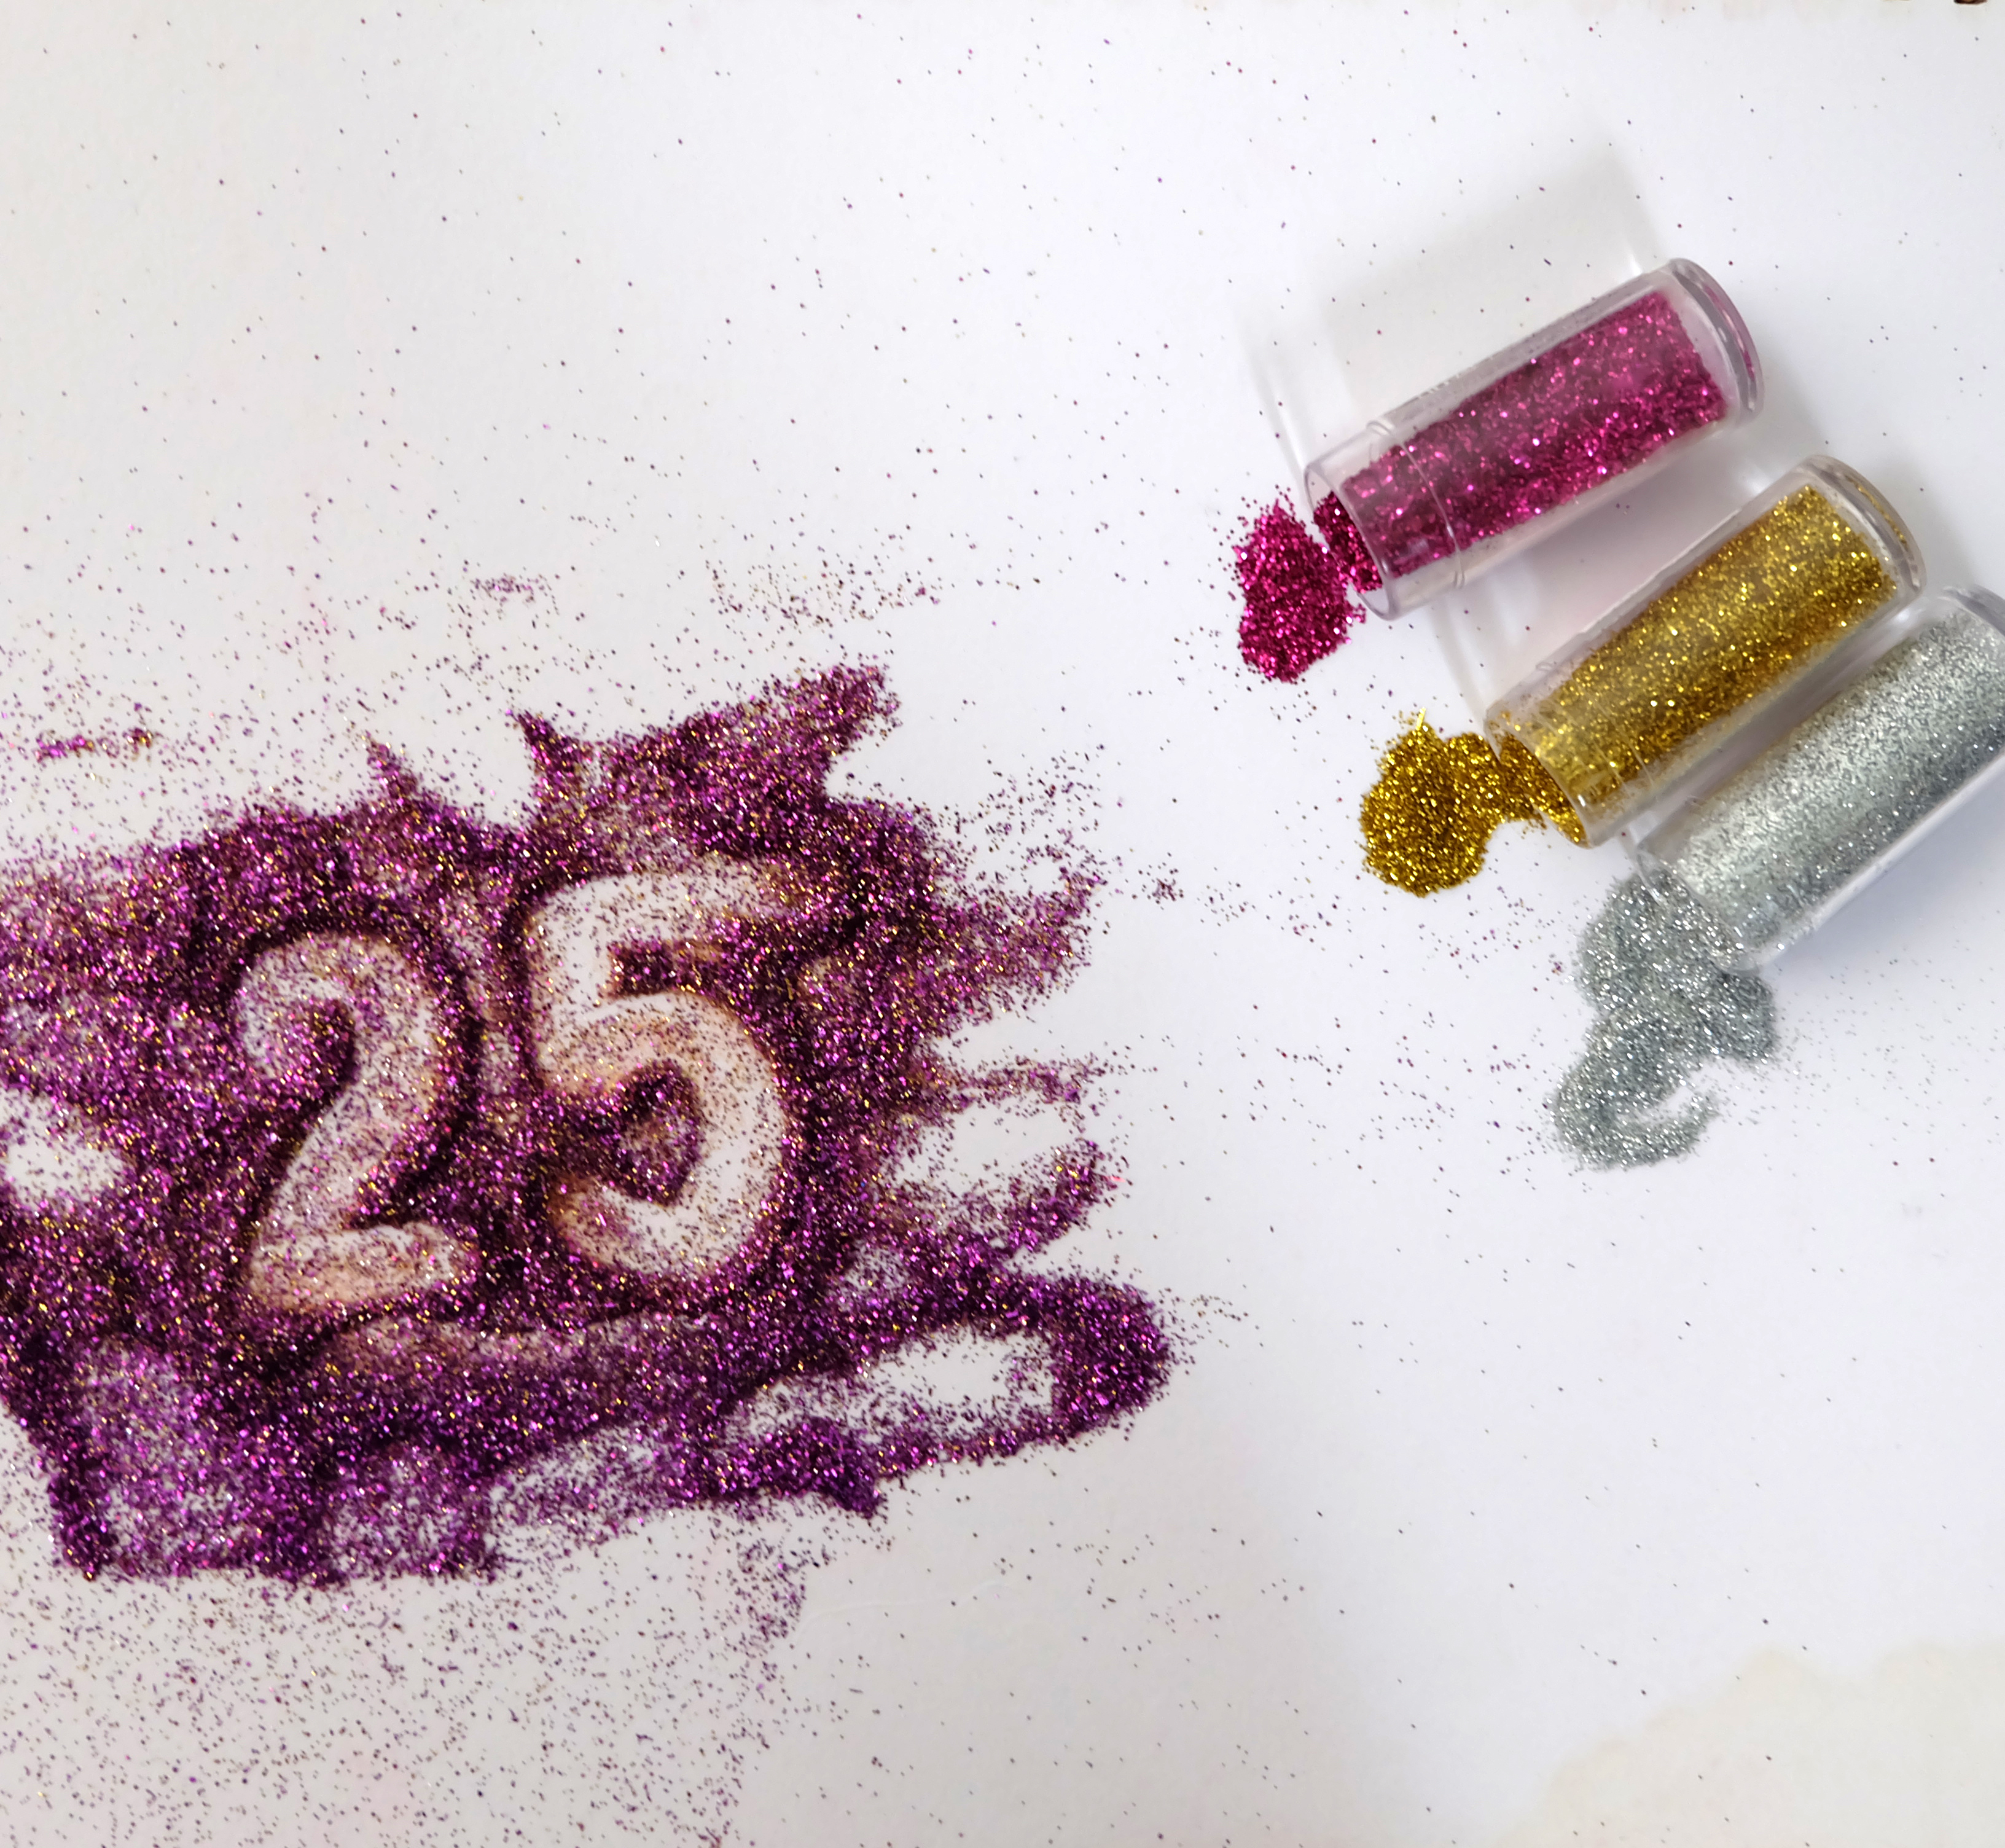 25 Things You Need To Know Before Turning 25